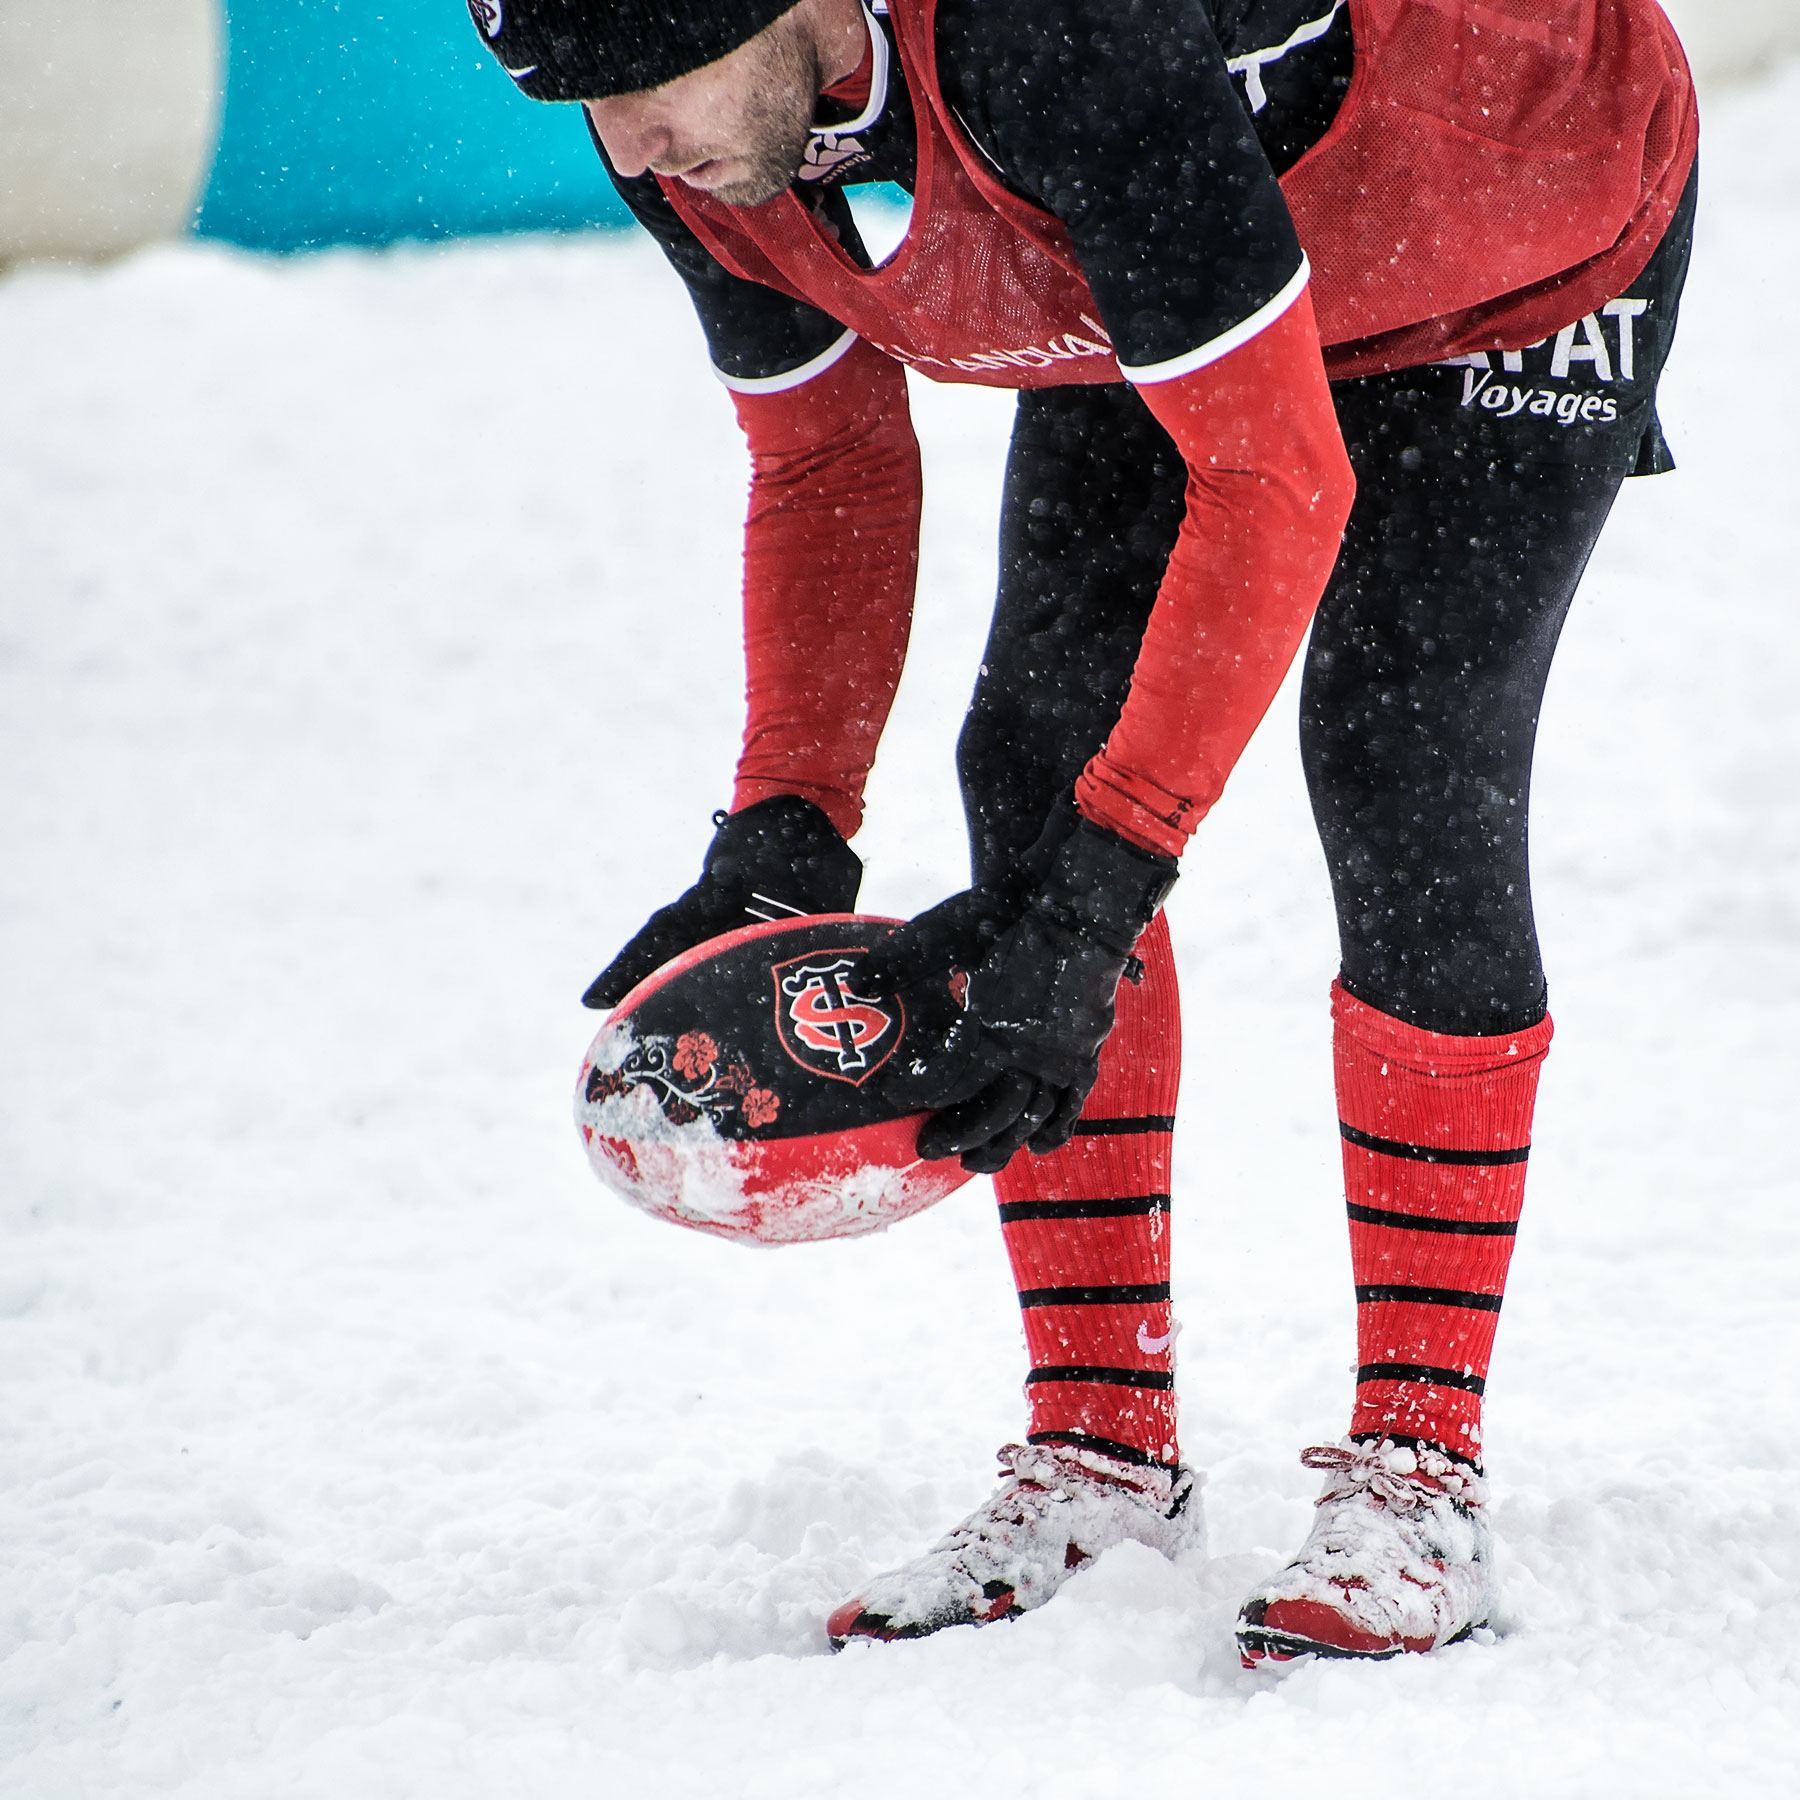 Snow-Rugby-Stade Toulousain